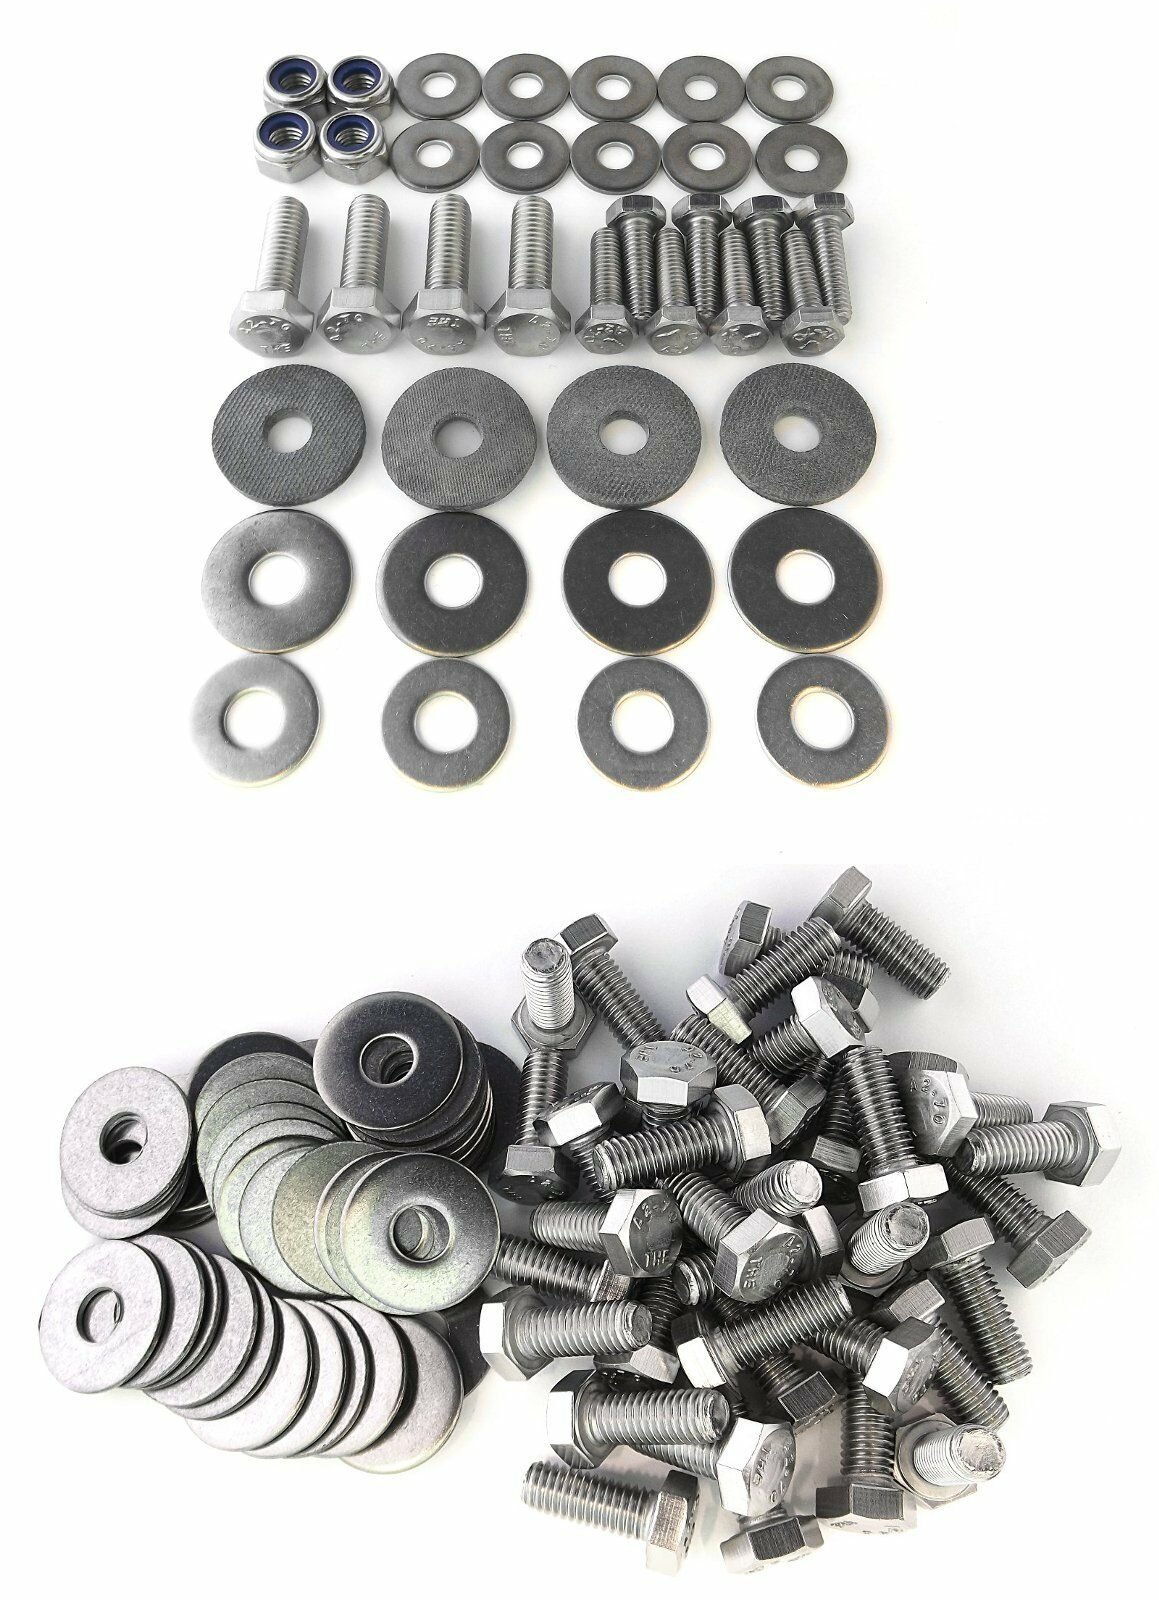 Volkswagen Beetle Wing Fitting Fasteners Kit Bolts /& Washers For All 4 Wings